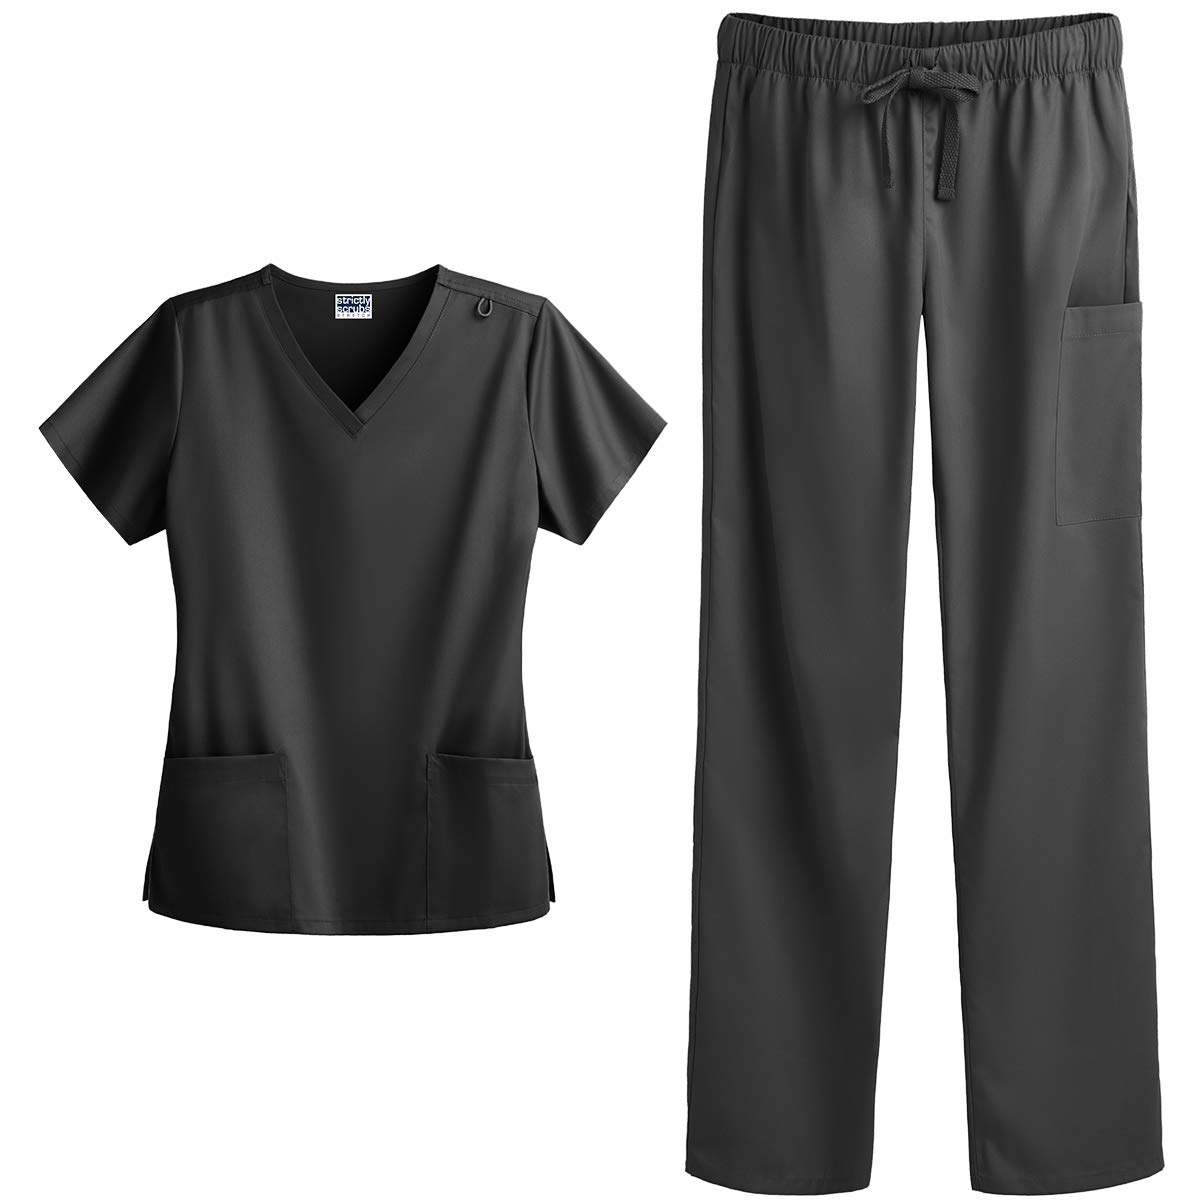 Strictly Scrubs Women's Four Way Stretch Scrub Set - Includes V-Neck Top and Pant